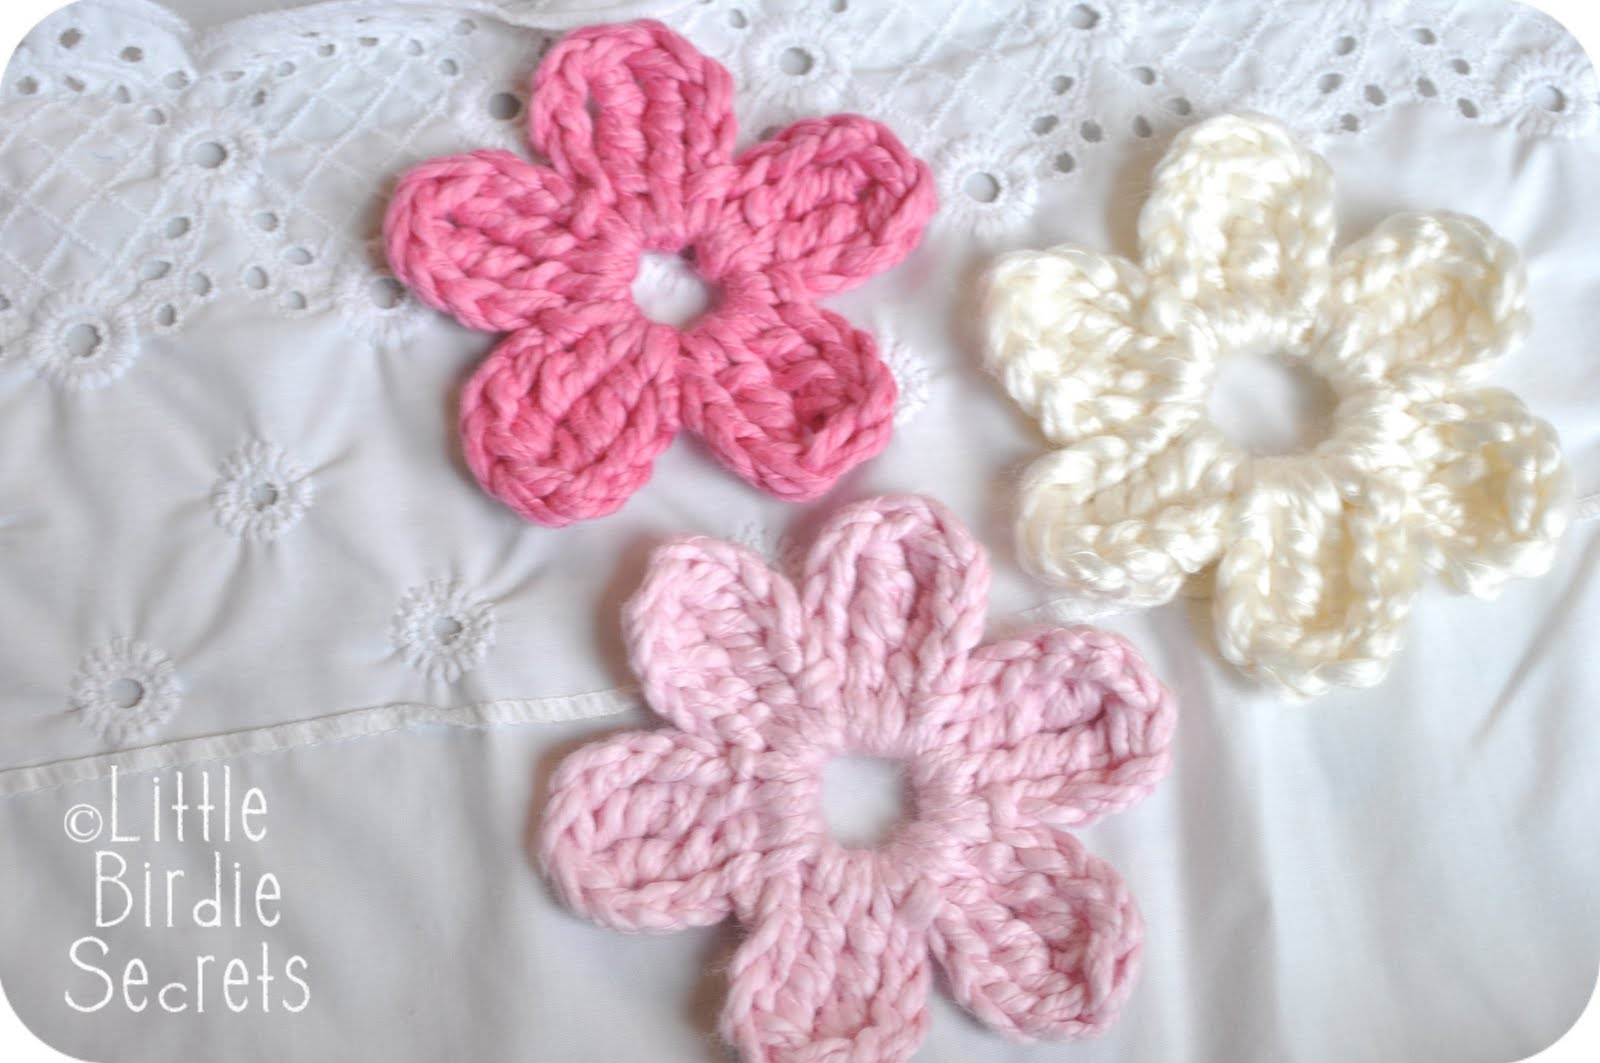 Crochet flower pattern free crochet patterns free crochet flower patterns bankloansurffo Images